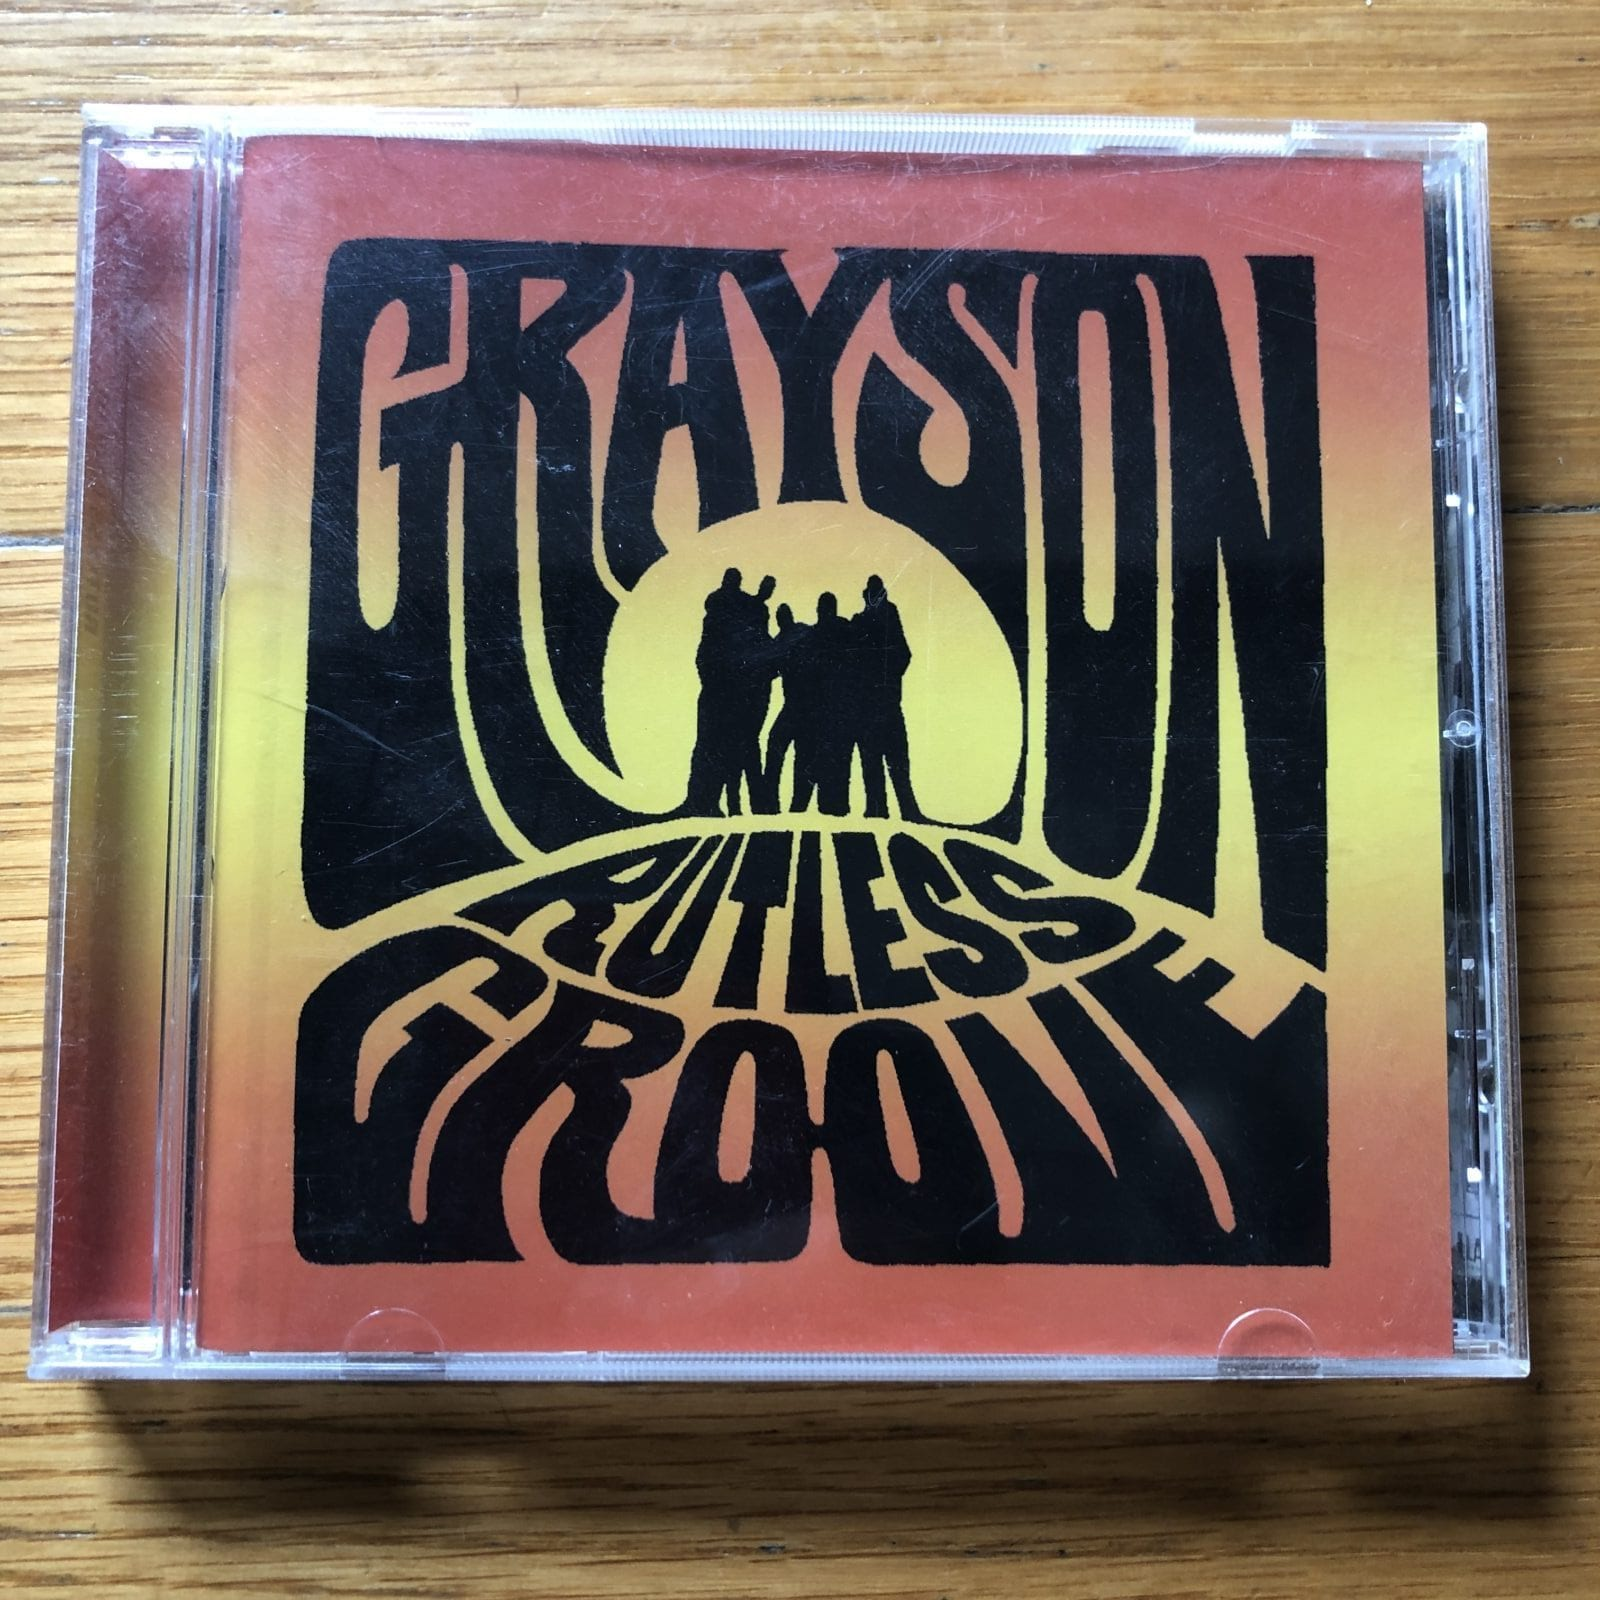 Grayson - Rutless Groove